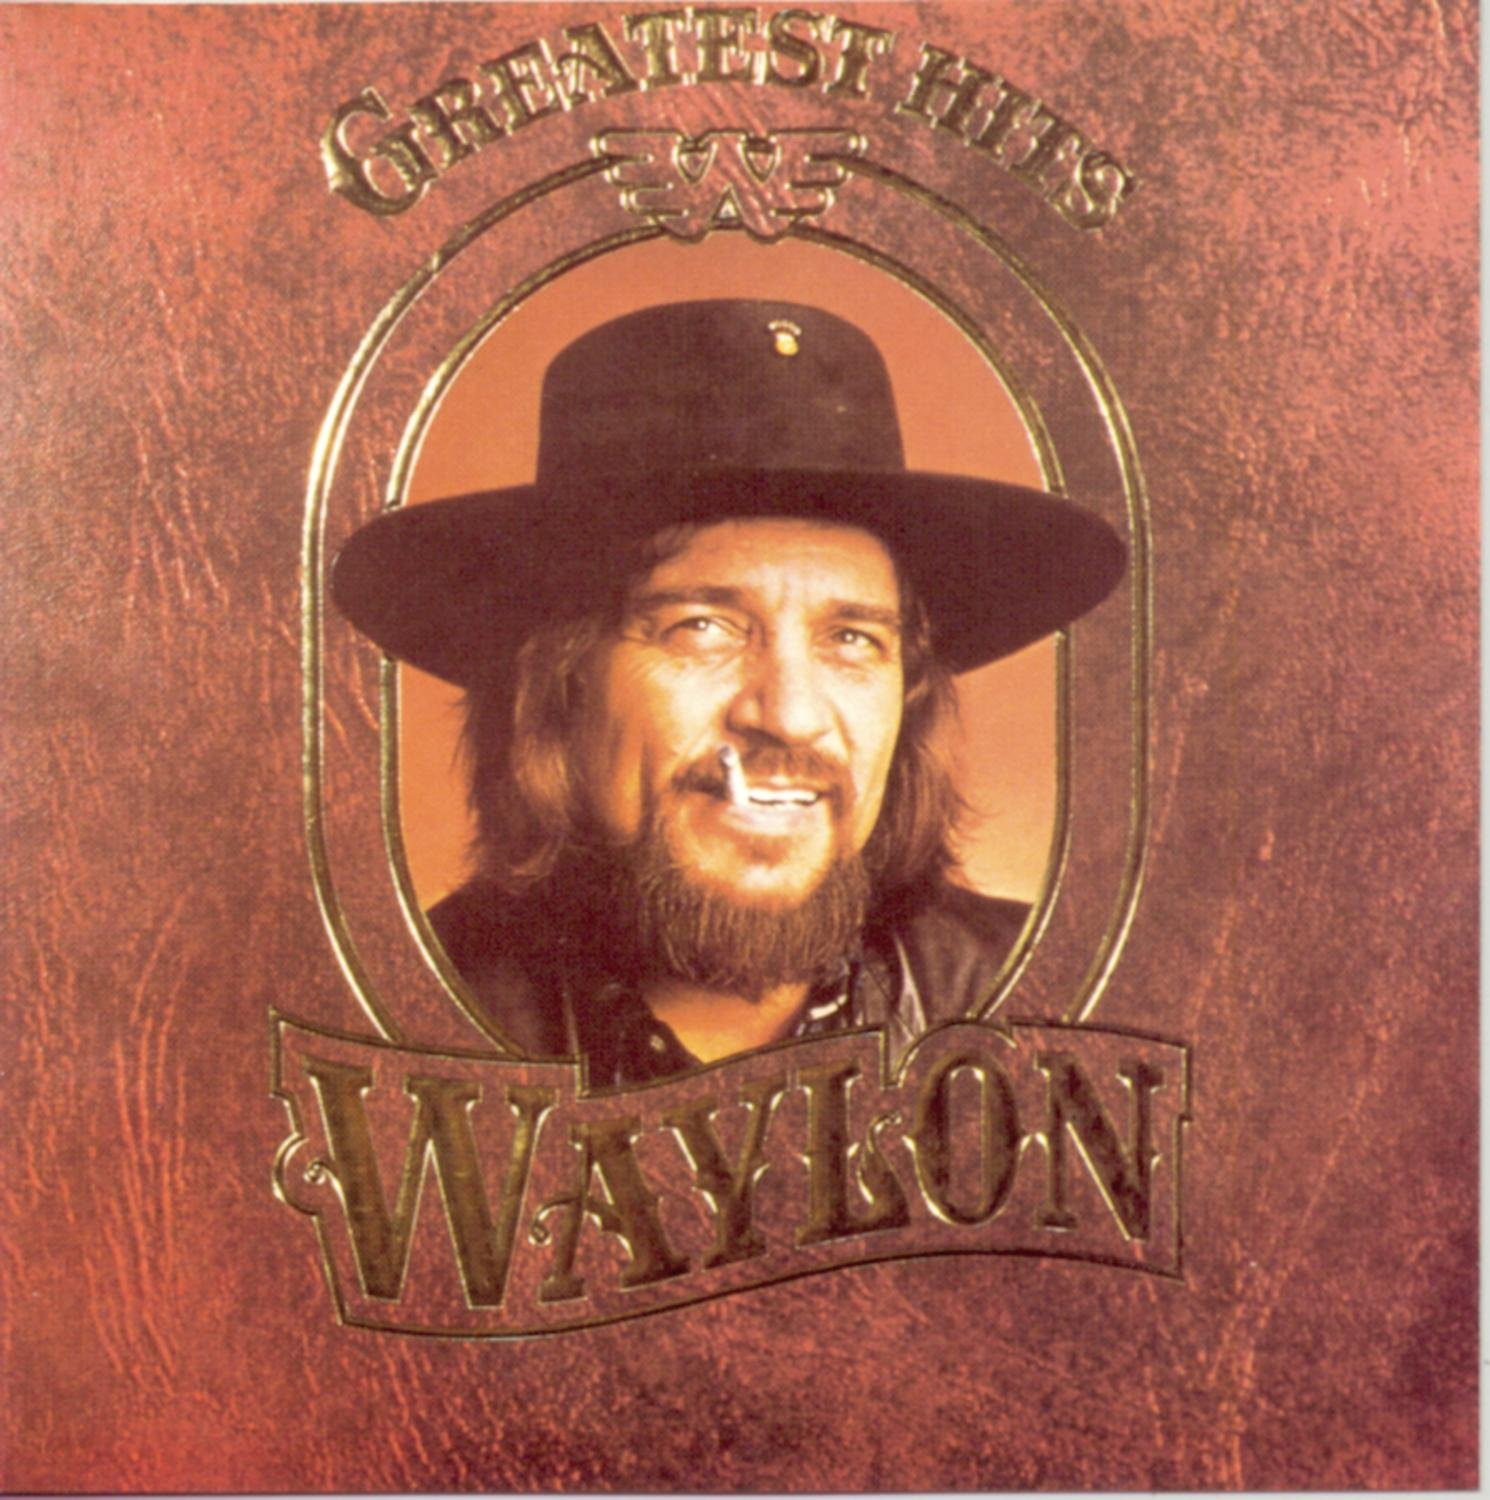 Are You Sure Hank Done It This Way (song by Waylon Jennings)